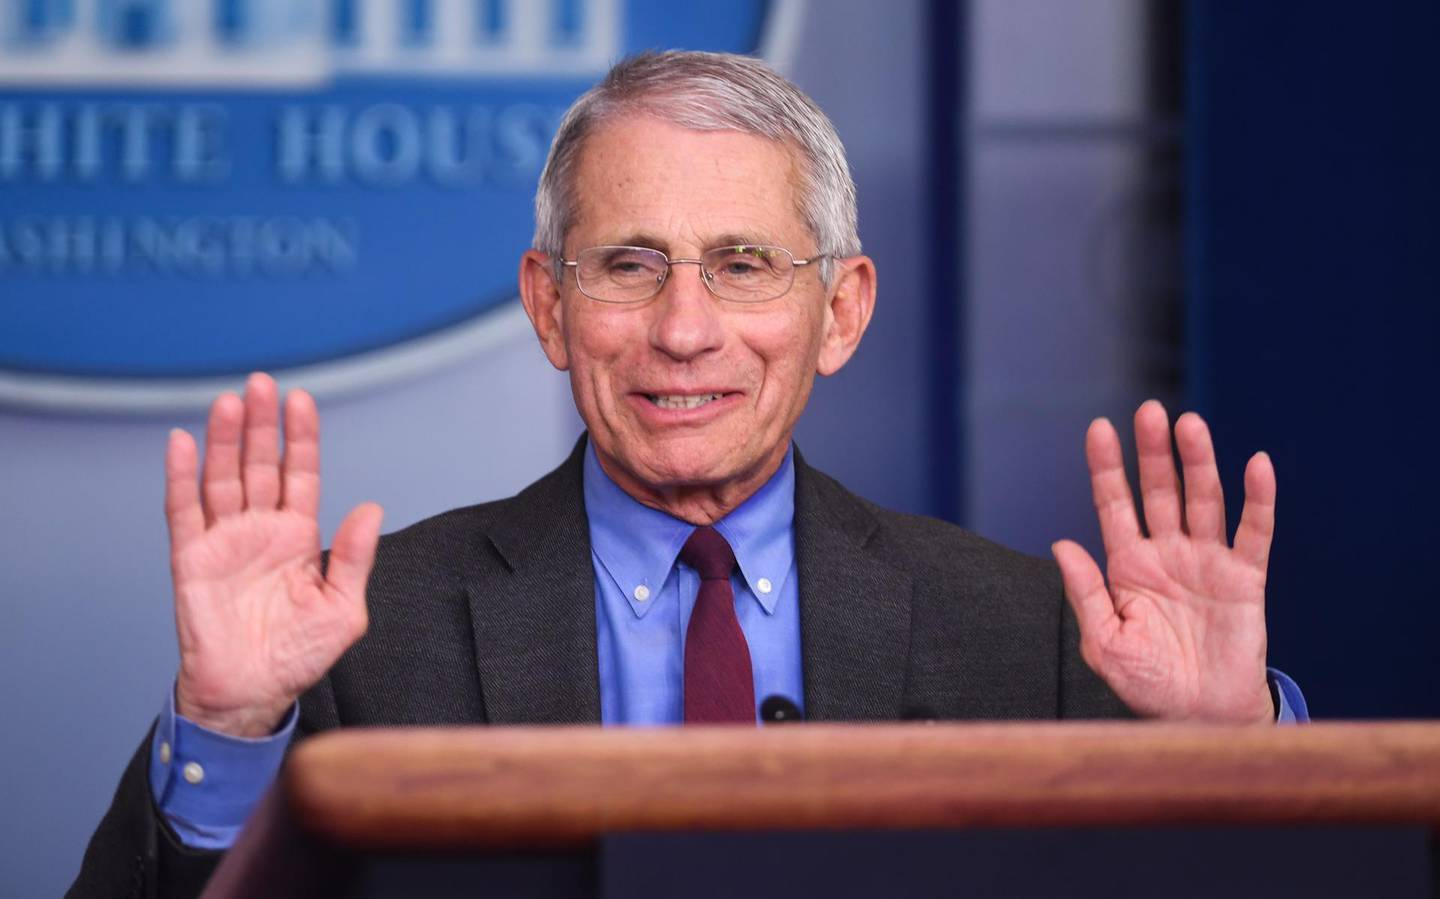 """Anthony Fauci, director of the National Institute of Allergy and Infectious Diseases, speaks during a Coronavirus Task Force news conference at the White House in Washington, D.C., U.S., on Friday, April 10, 2020. President Donald Trump said he has asked his agriculture secretary to """"use all of the funds and authorities at his disposal,"""" to aid U.S. farmers, whose financial peril has worsened in the coronavirus pandemic. Photographer: Kevin Dietsch/UPI/Bloomberg"""